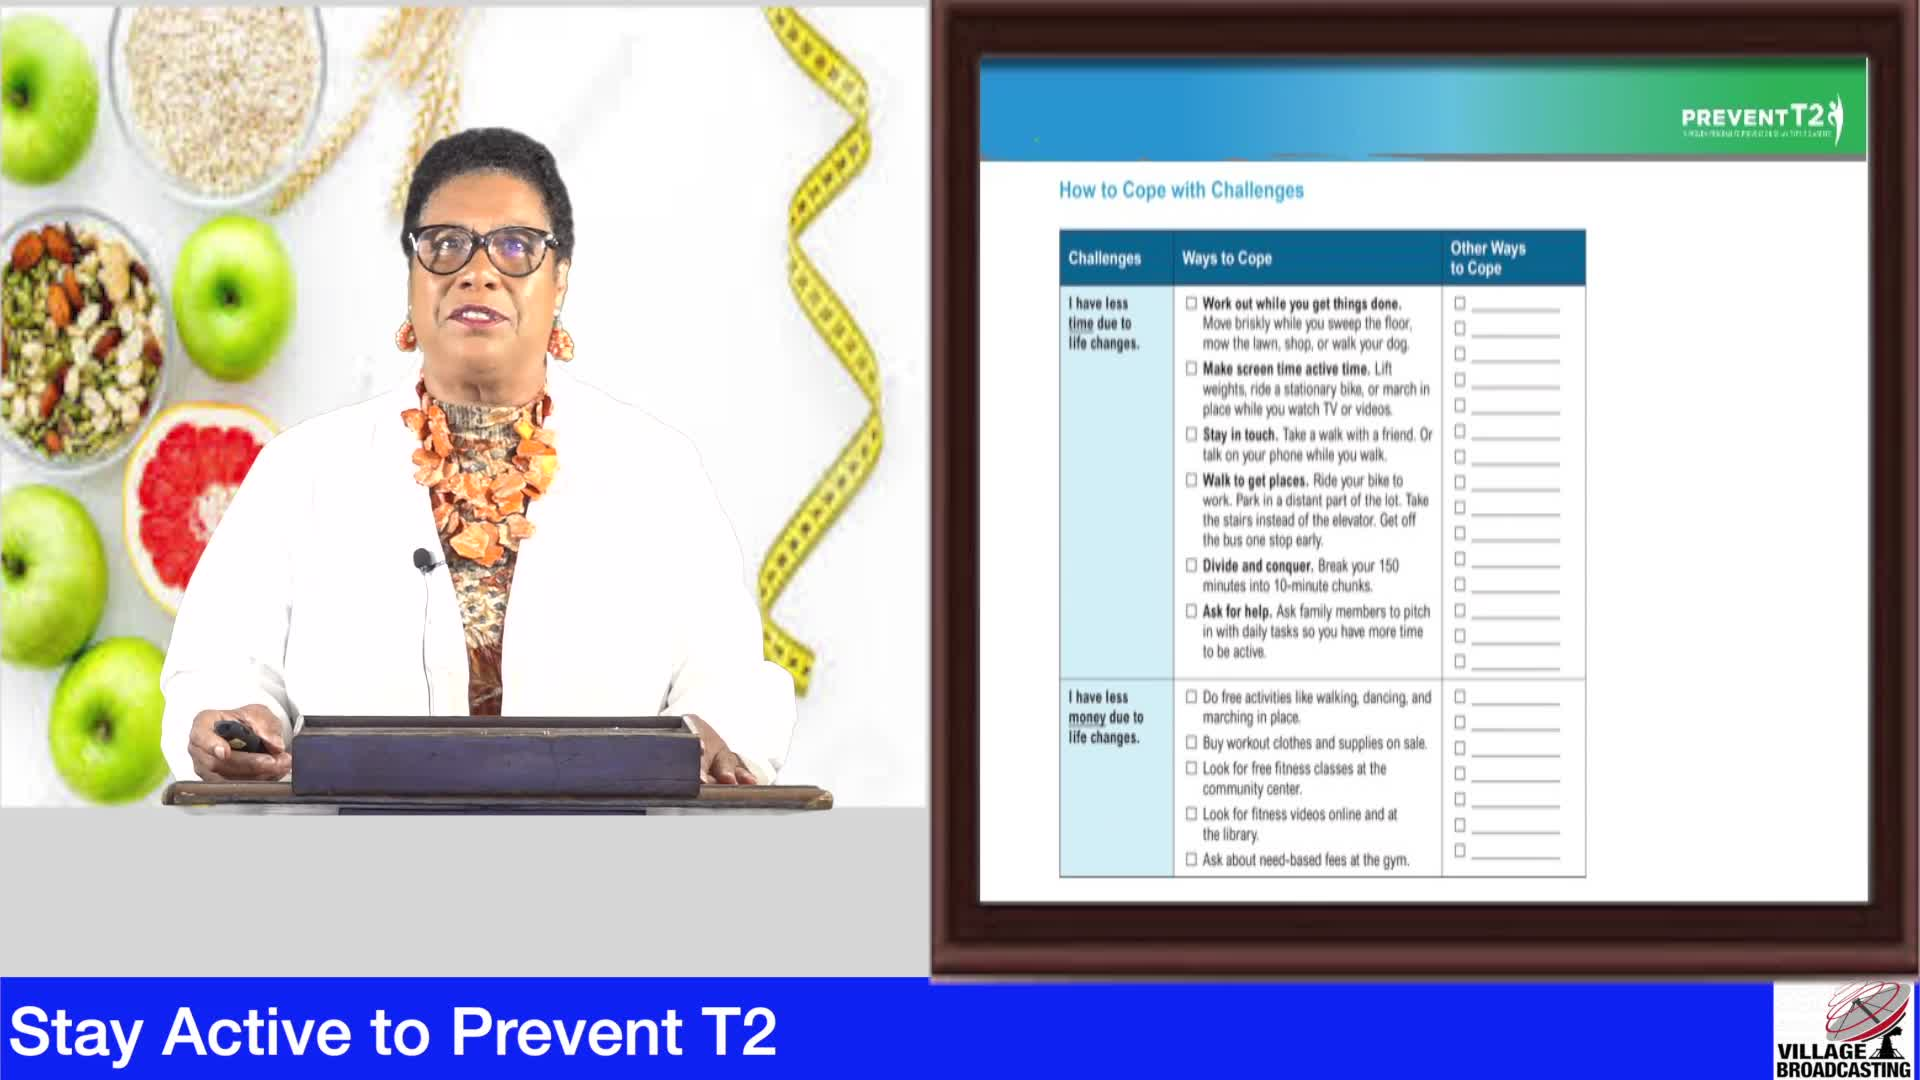 Stay Active to Prevent T2 10-23-20